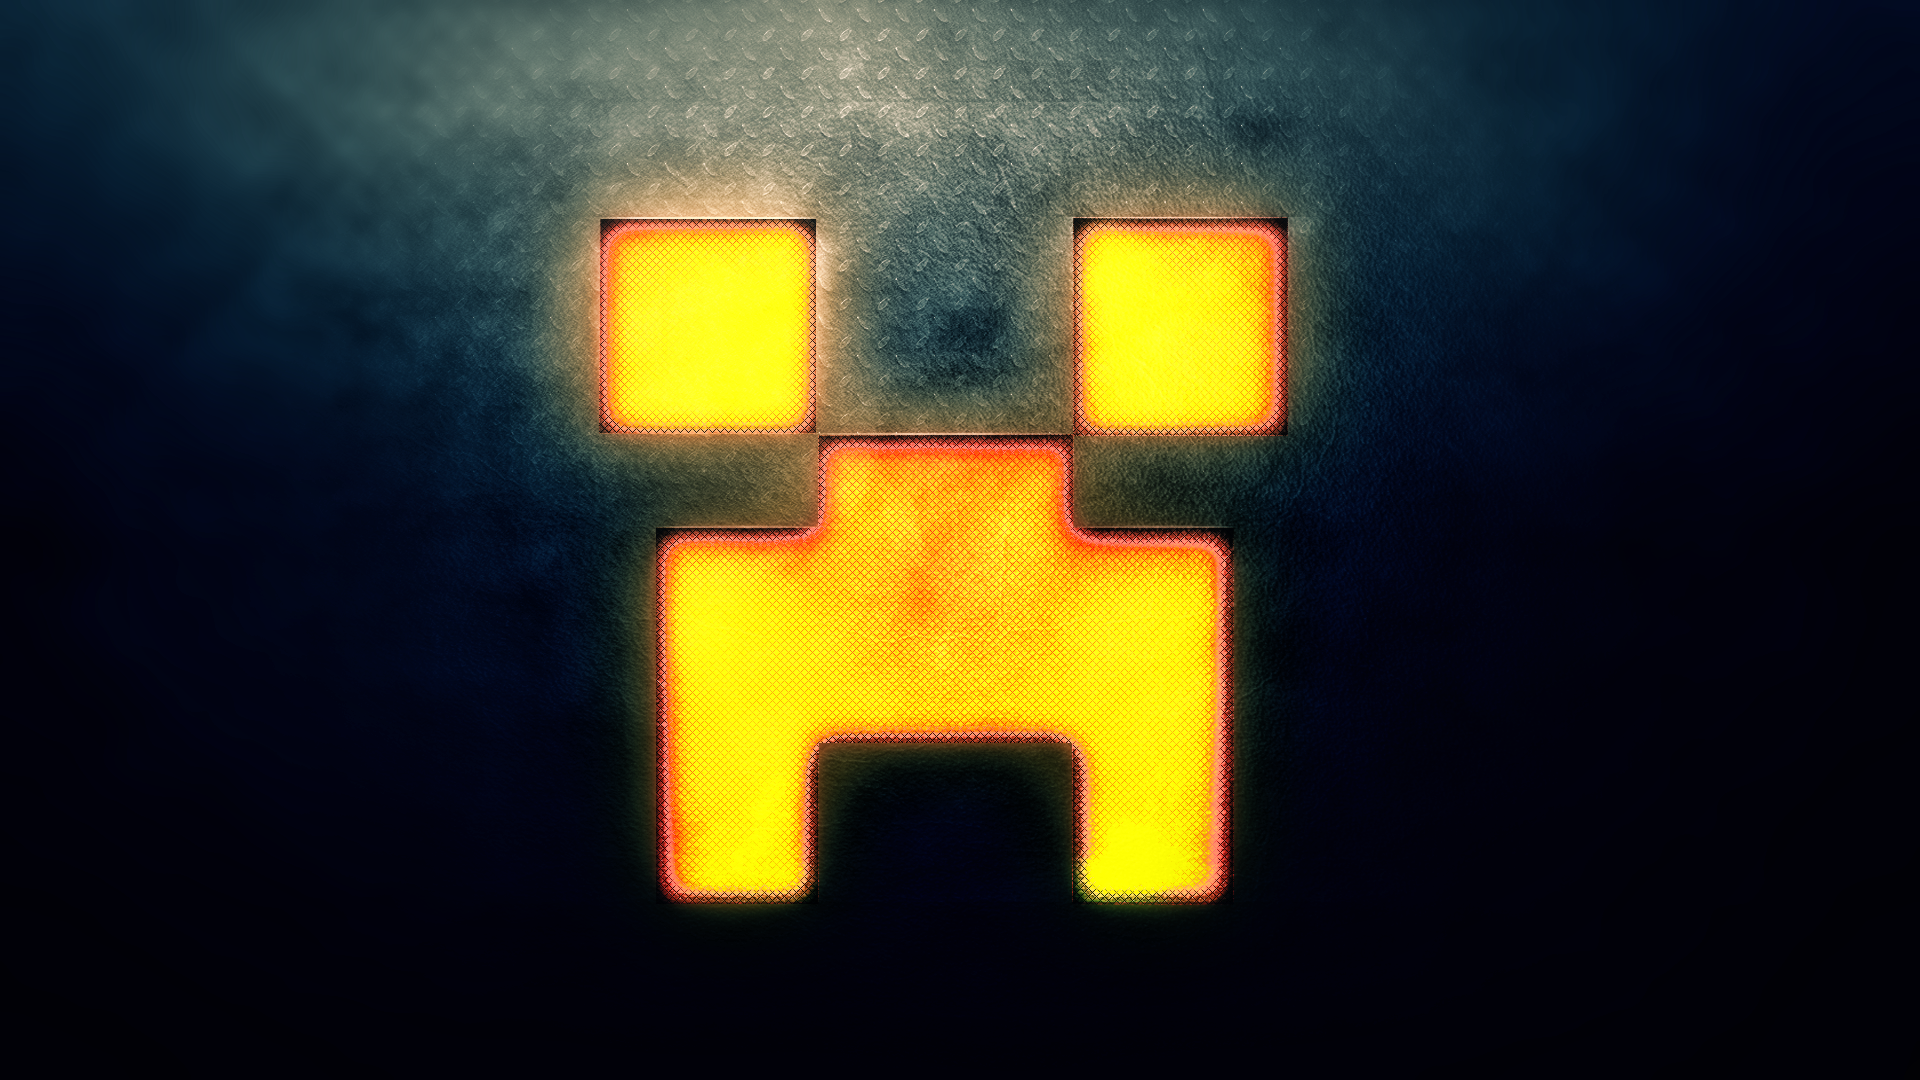 Burning creeper by clutchsky on deviantart burning creeper by clutchsky burning creeper by clutchsky voltagebd Image collections